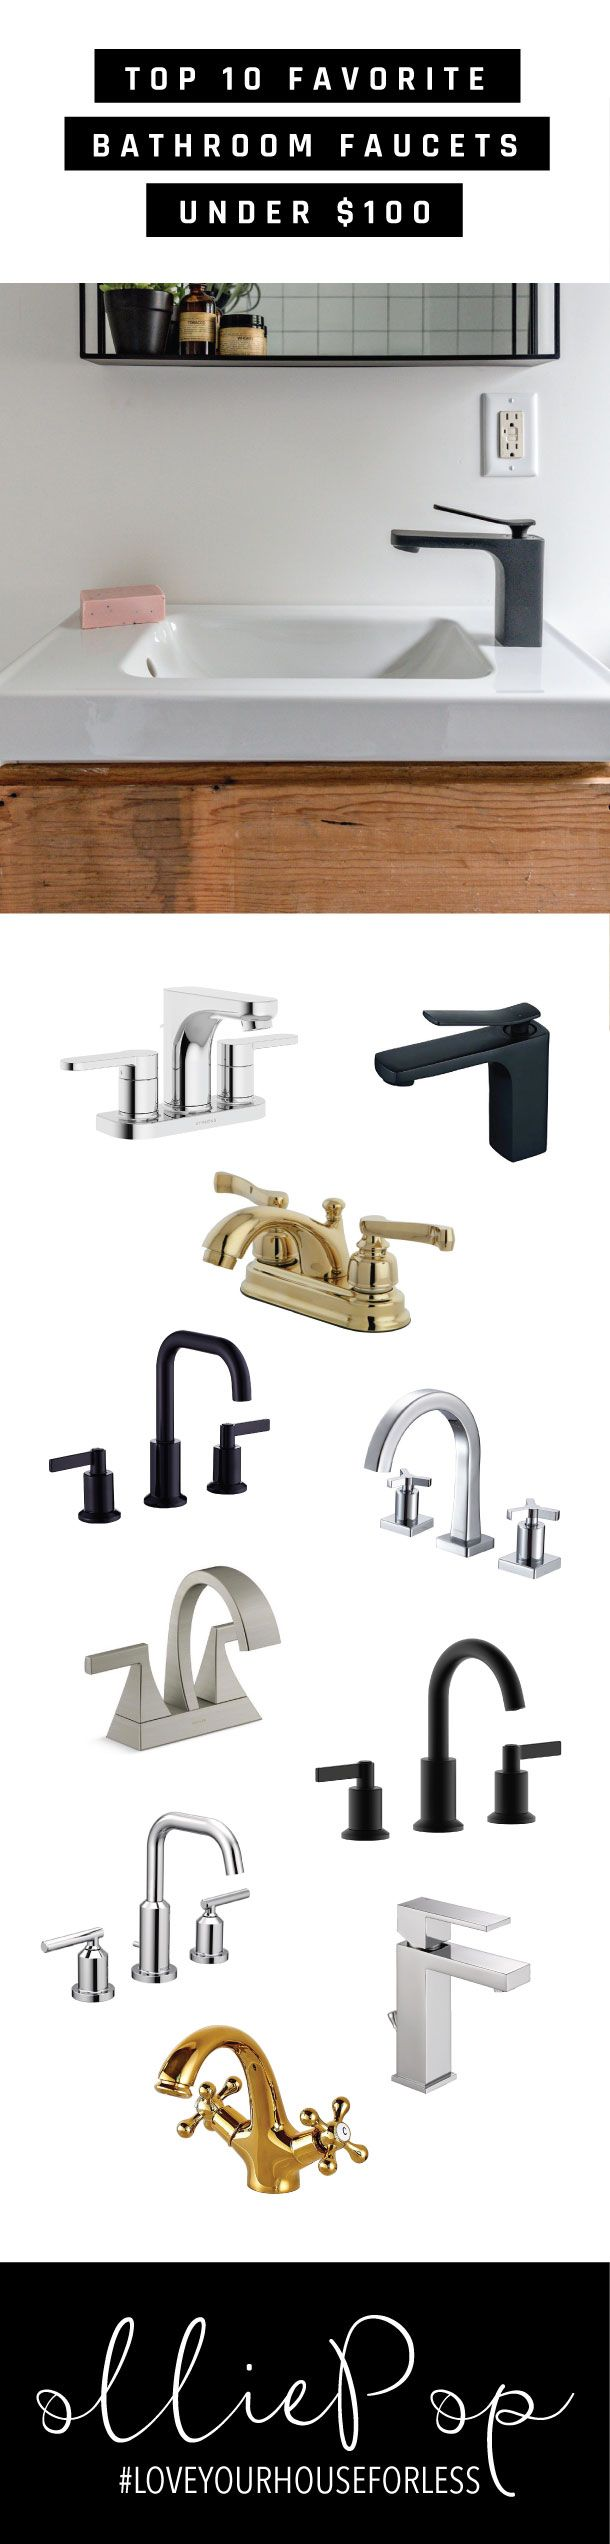 Top 10 Favorite Bathroom Faucets Under 100 Products We Love